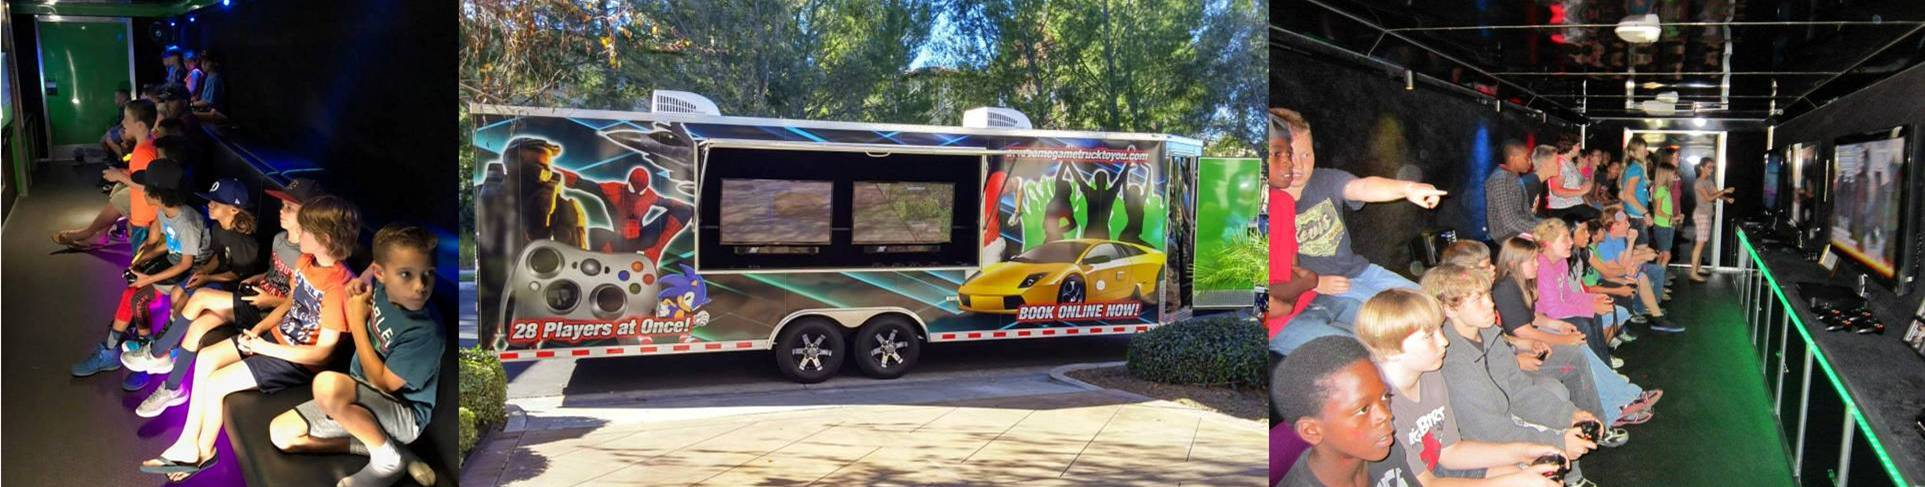 Video game truck, game van, game trailer in Santa Clarita, Ventura County California